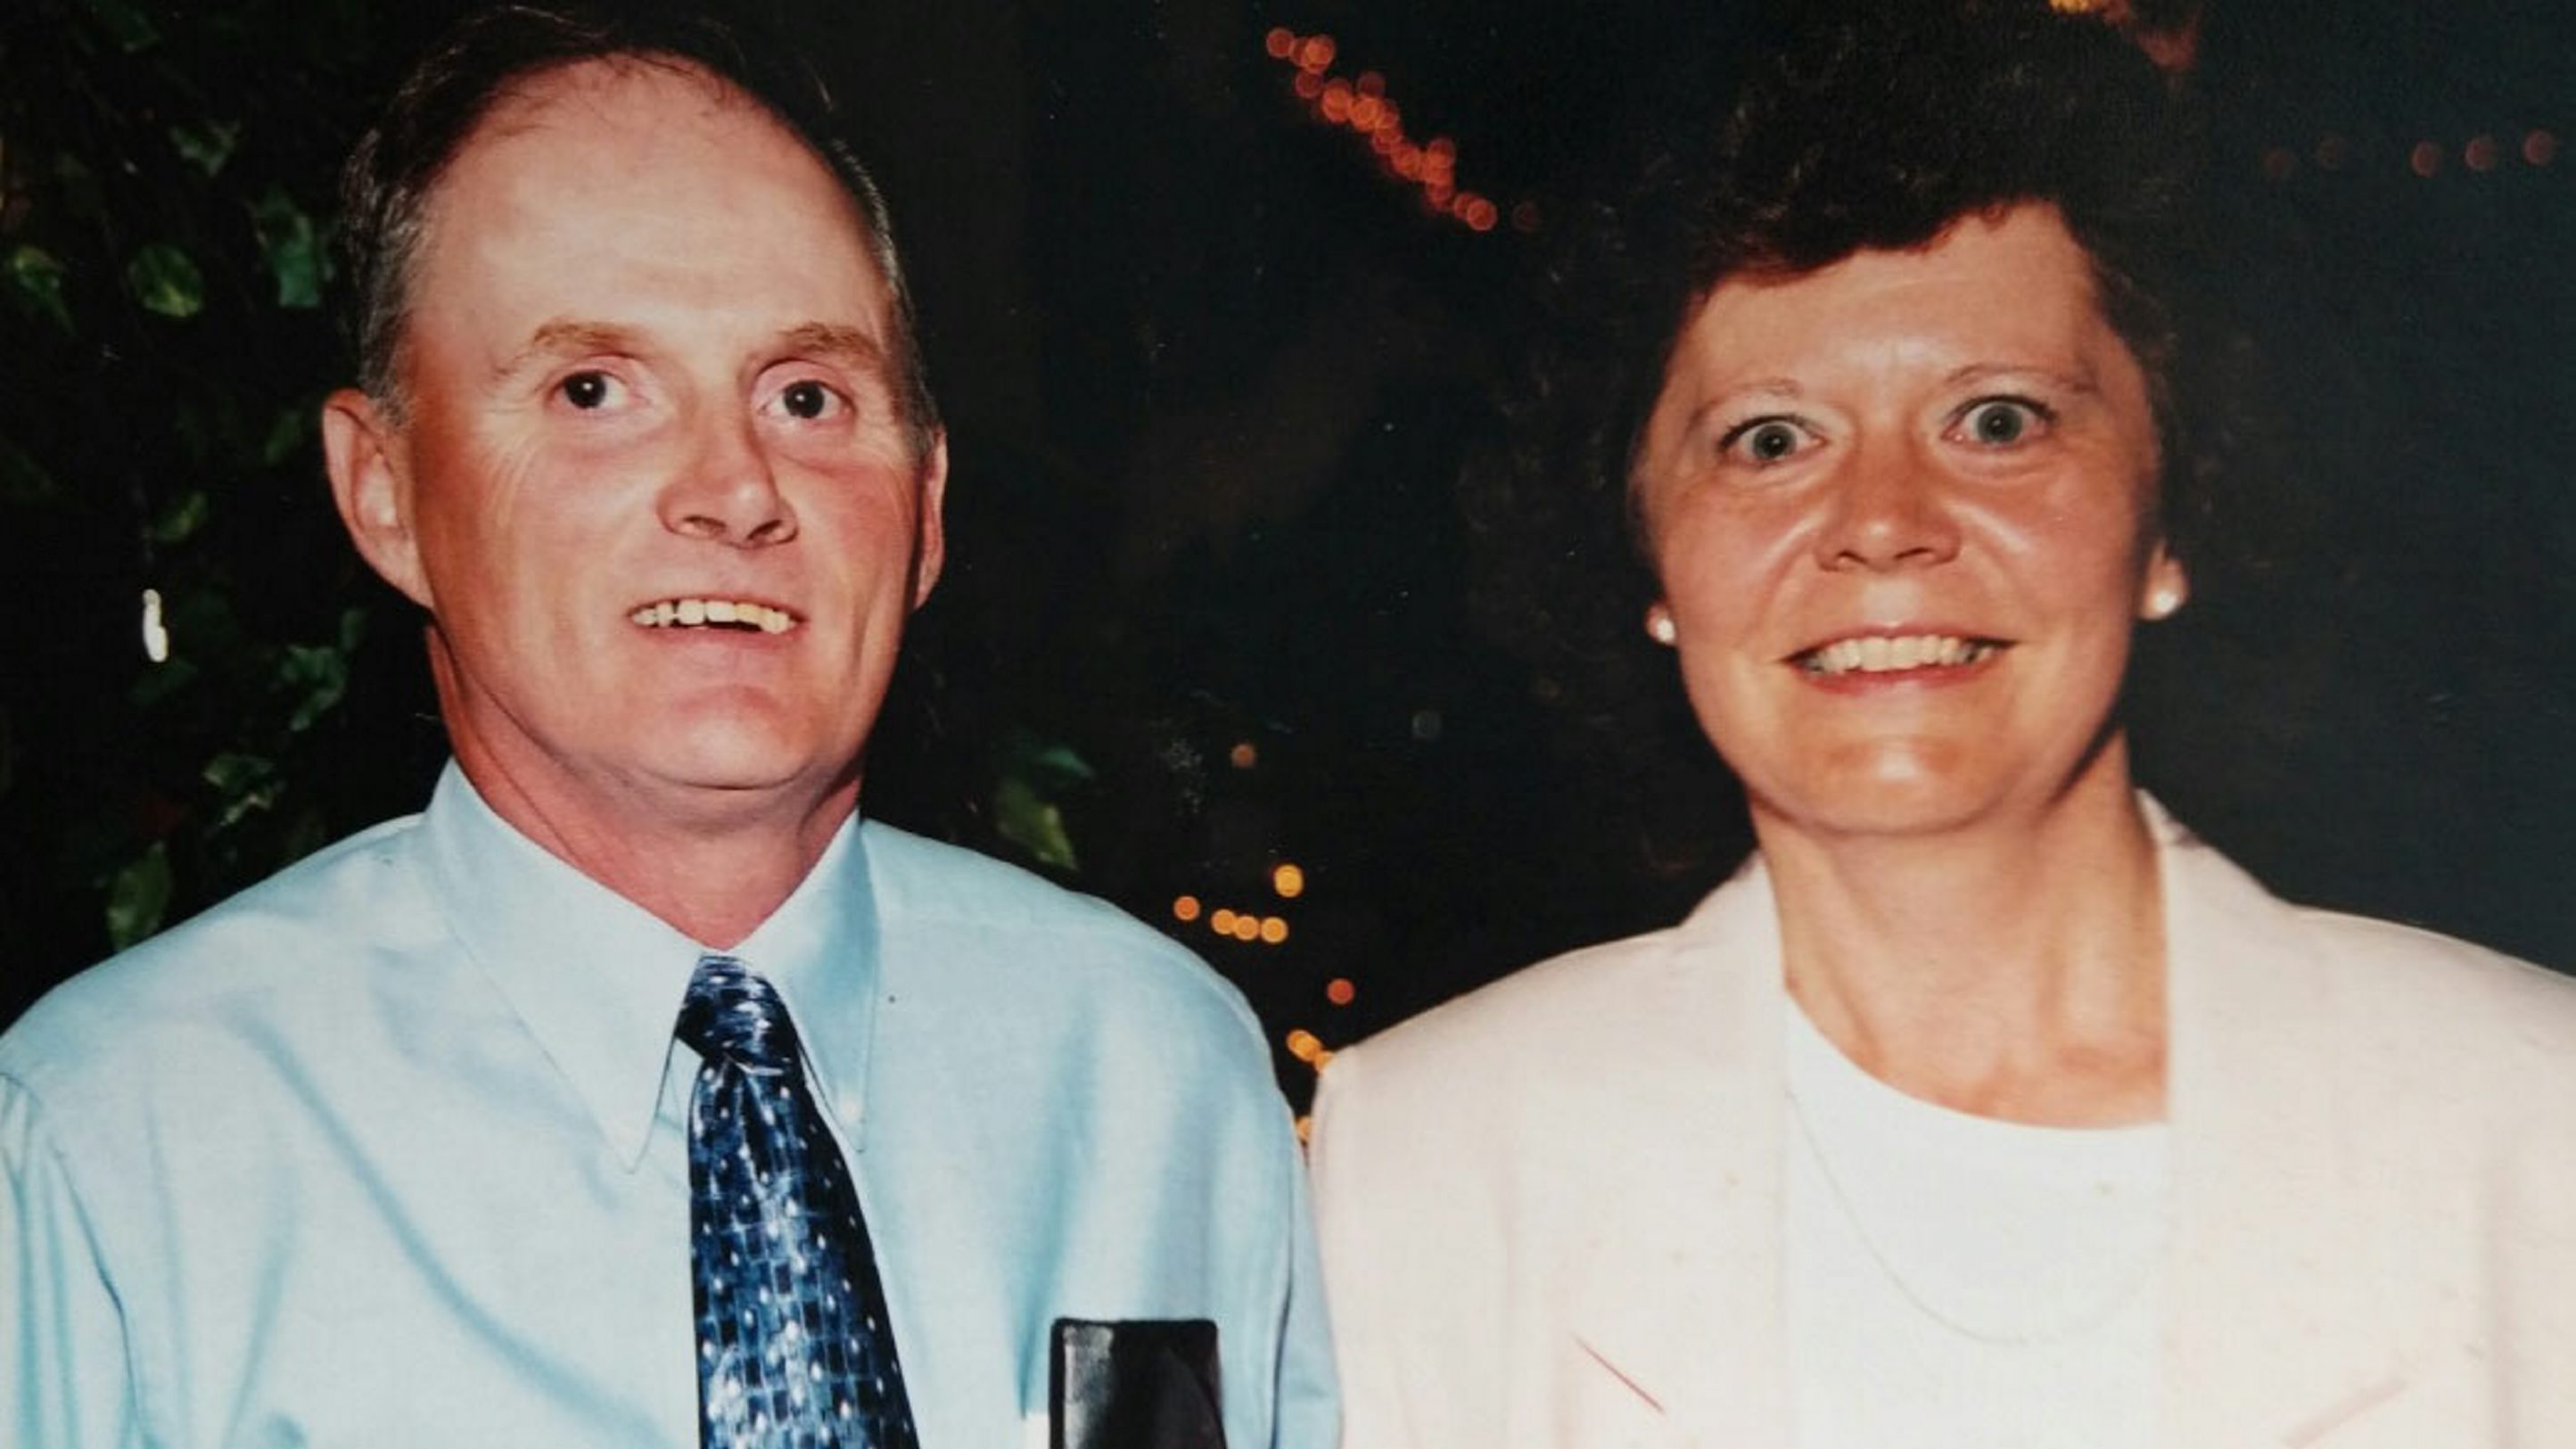 Gordon Skinner, 66, and his wife Joyce Skinner, 59, were brutally slain in their Town of Carroll home in April 2013.